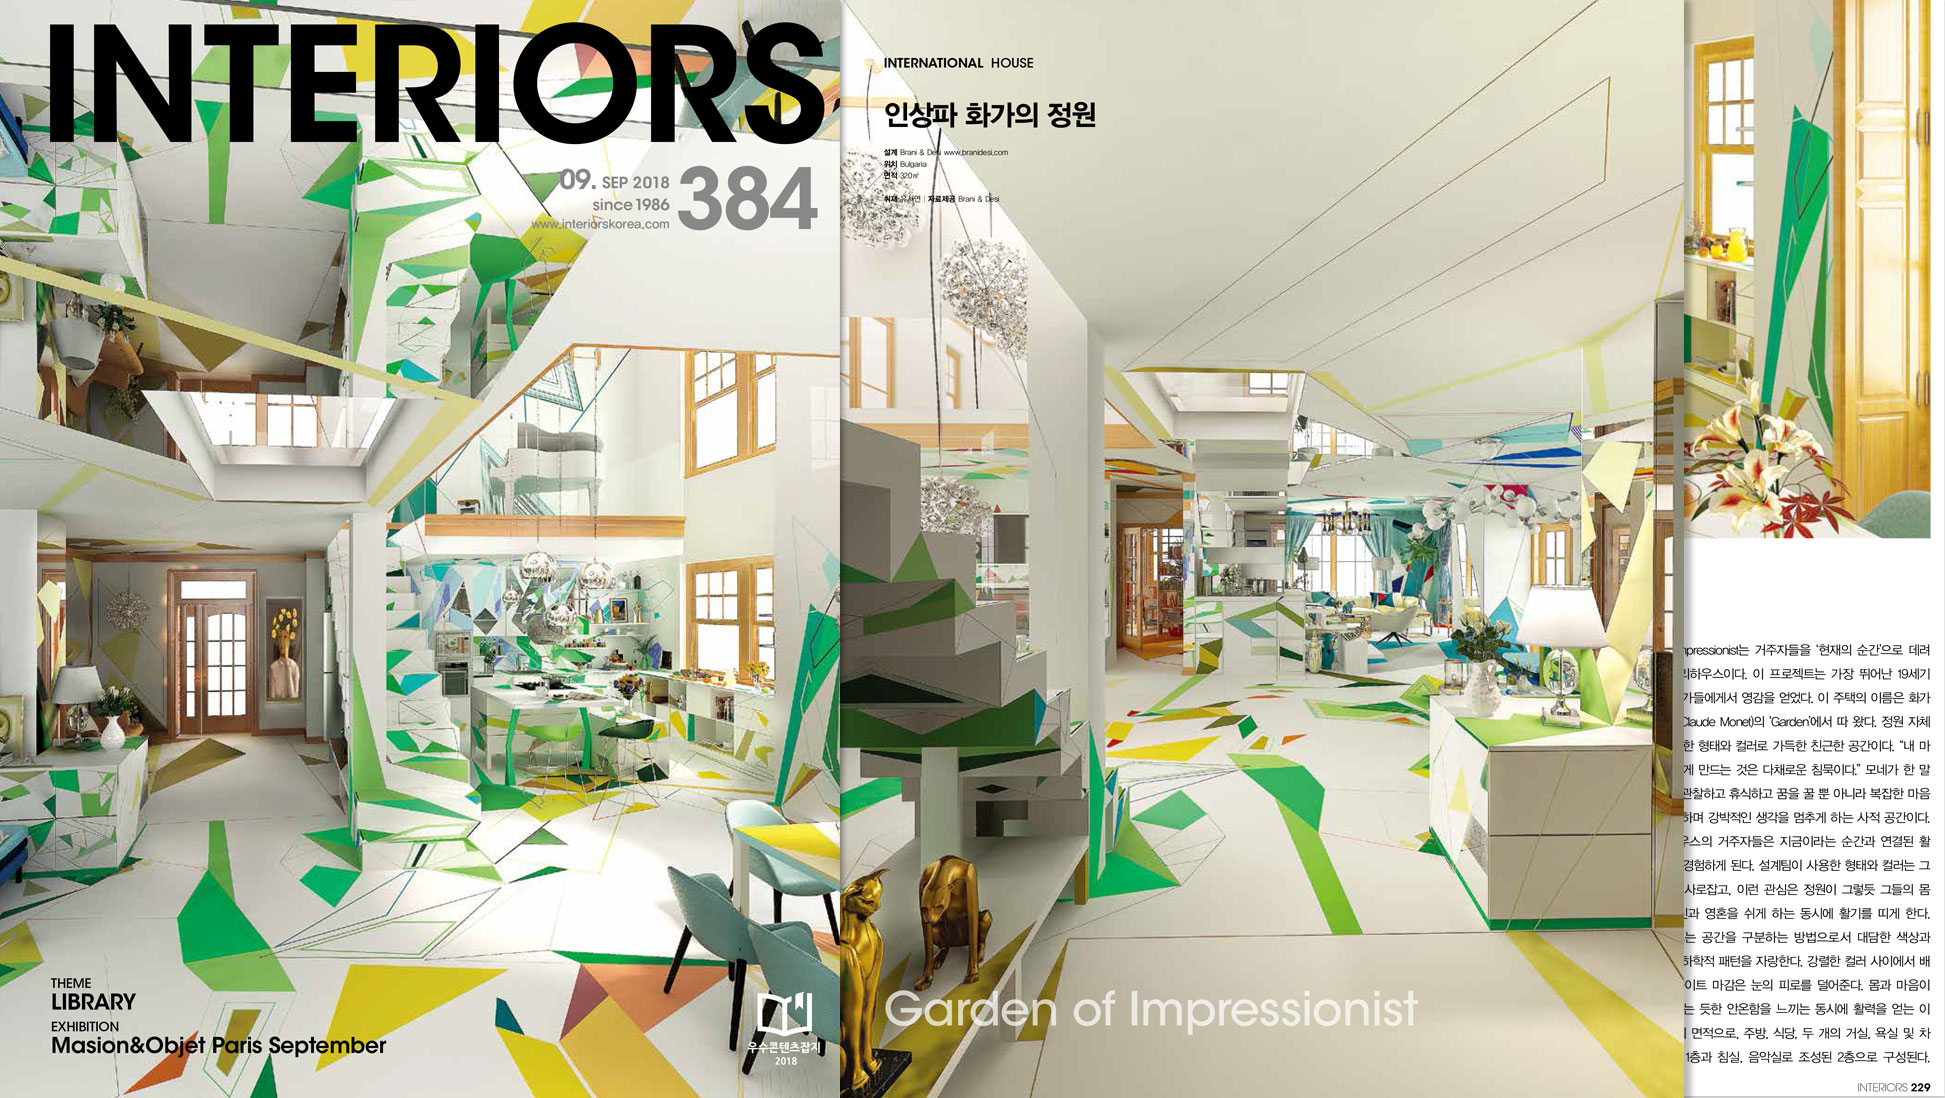 On the cover of the september issue of Interiors, Korea